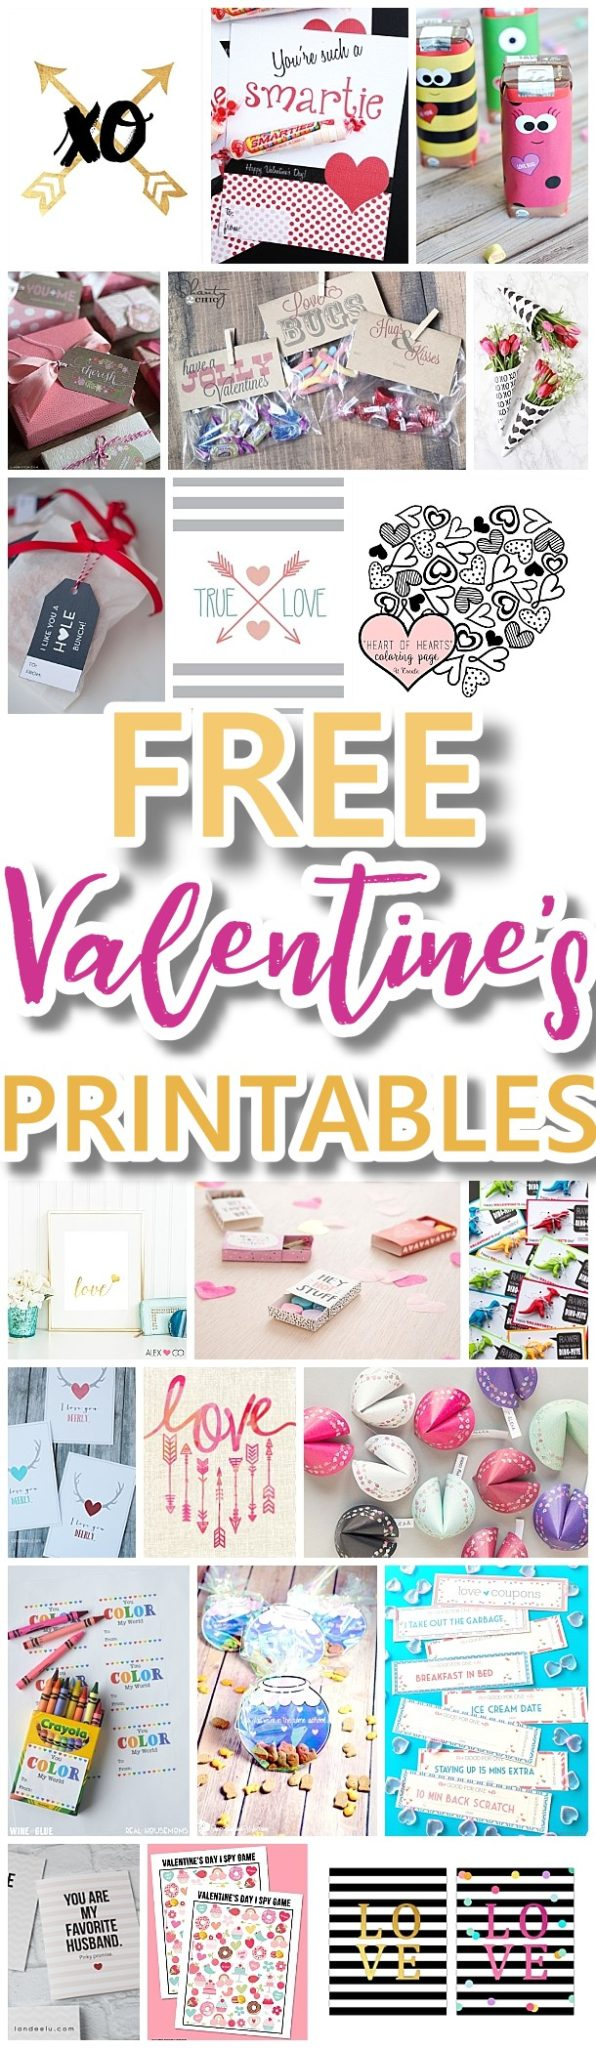 The BEST Valentine's Day FREE Printables - Kids Classmate Cards, Valentine Party Decorations, Hearts, Love, Red and Pink Themed Artwork Home Decor and Holiday Greeting Cards for your Sweethearts! - Dreaming in DIY